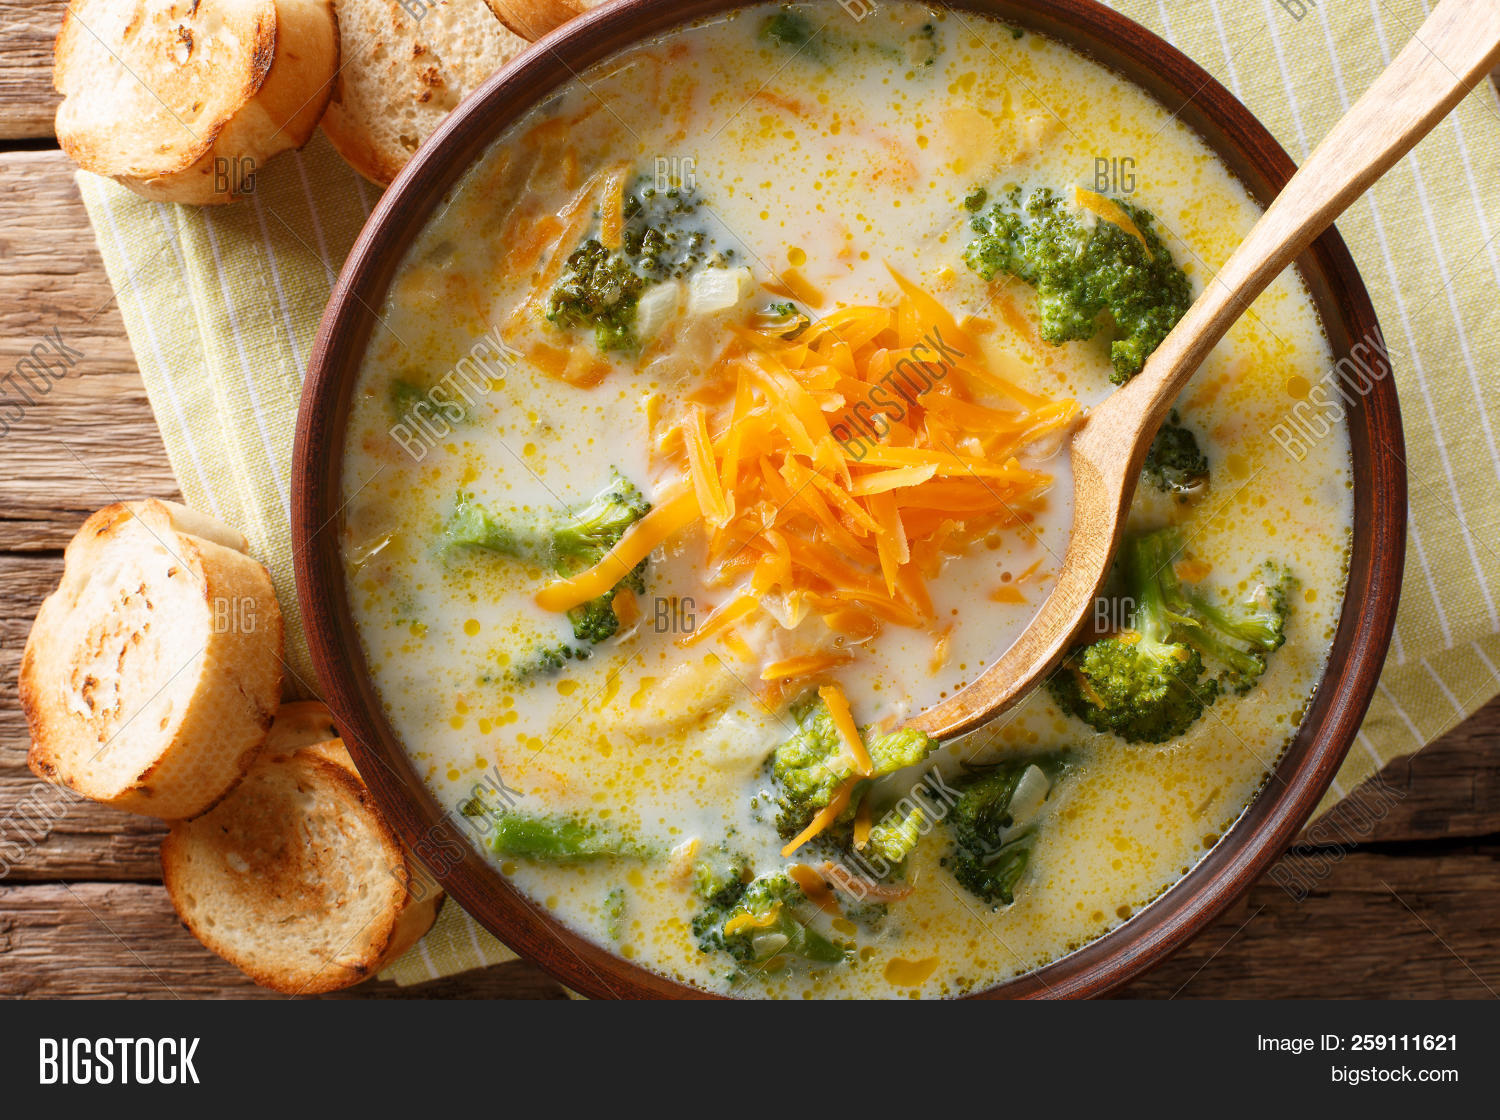 above,american,appetizer,background,bowl,bread,broccoli,carrot,cheddar,cheese,closeup,cream,creamy,cuisine,delicious,diet,dinner,dish,food,fresh,garlic,gourmet,green,healthy,horizontal,hot,lunch,meal,menu,napkin,portion,recipe,restaurant,rustic,savory,served,soup,spicy,spoon,table,tasty,thick,toast,top,traditional,vegetable,vegetarian,view,wooden,yellow